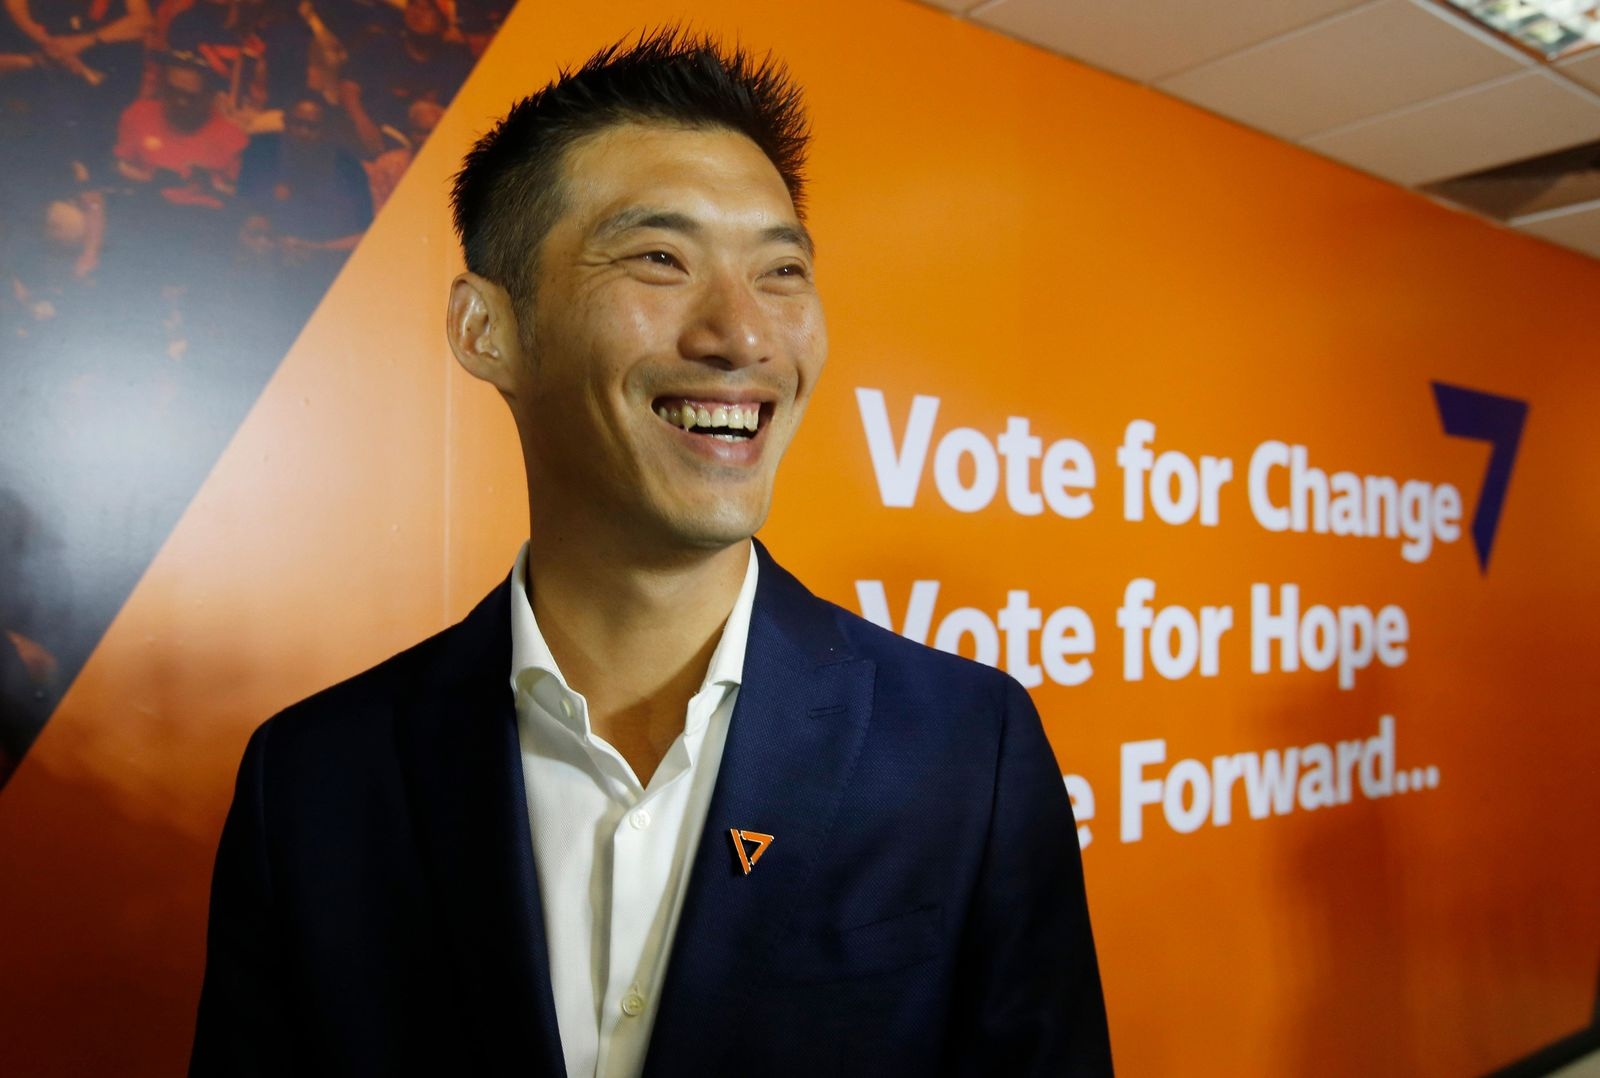 Future Forward Party leader Thanathorn Juangroongruangkit smiles after a press conference at the party headquarters in Bangkok, Thailand, Monday, March 25, 2019. The Election Commission announced the results of 350 constituency races but full vote counts, which are needed to determine the allocation of 150 other seats in the House of Representatives, won't be available until Friday. (AP Photo/Sakchai Lalit)